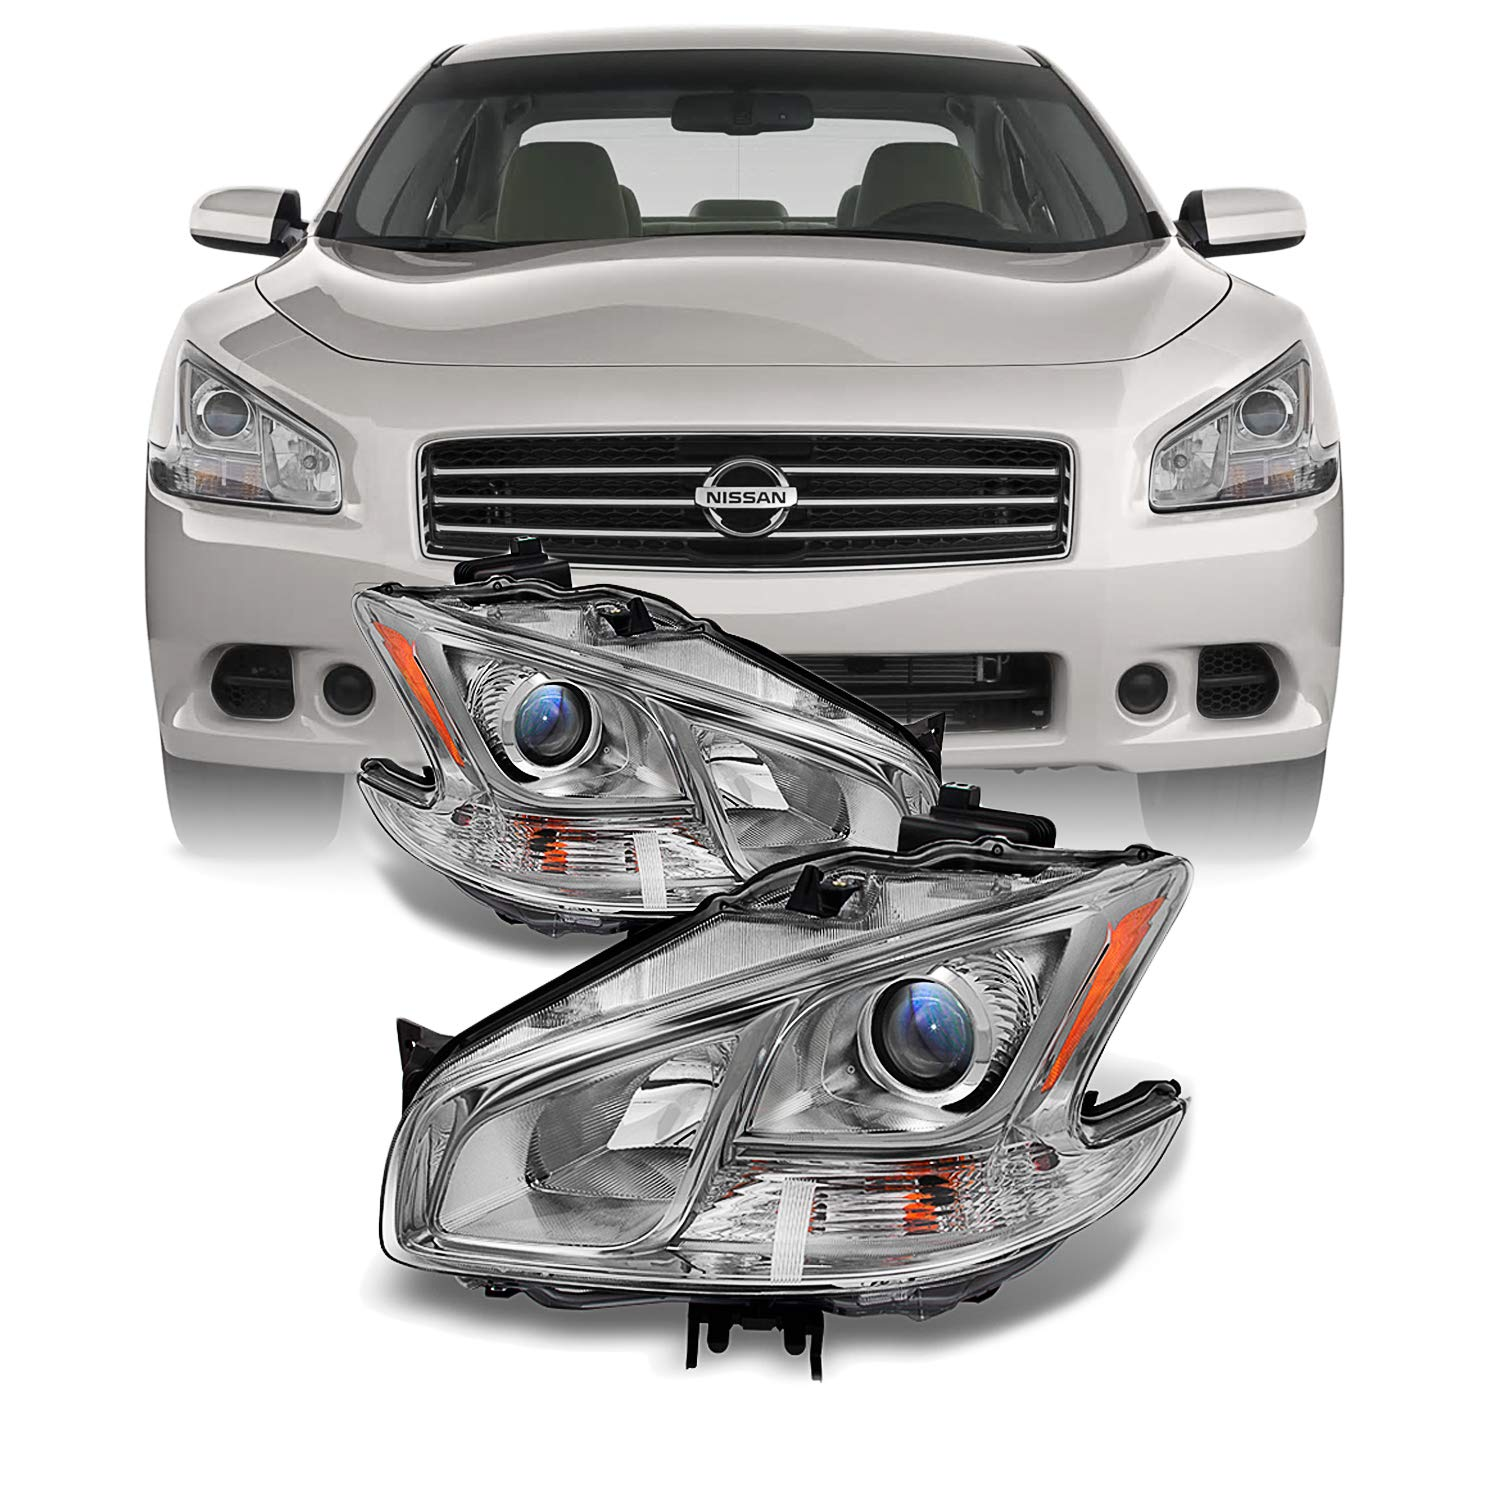 For Maxima 4Dr Sedan Projector Halogen Type Headlights Driver Left + Passenger Right Replacement by AKKON